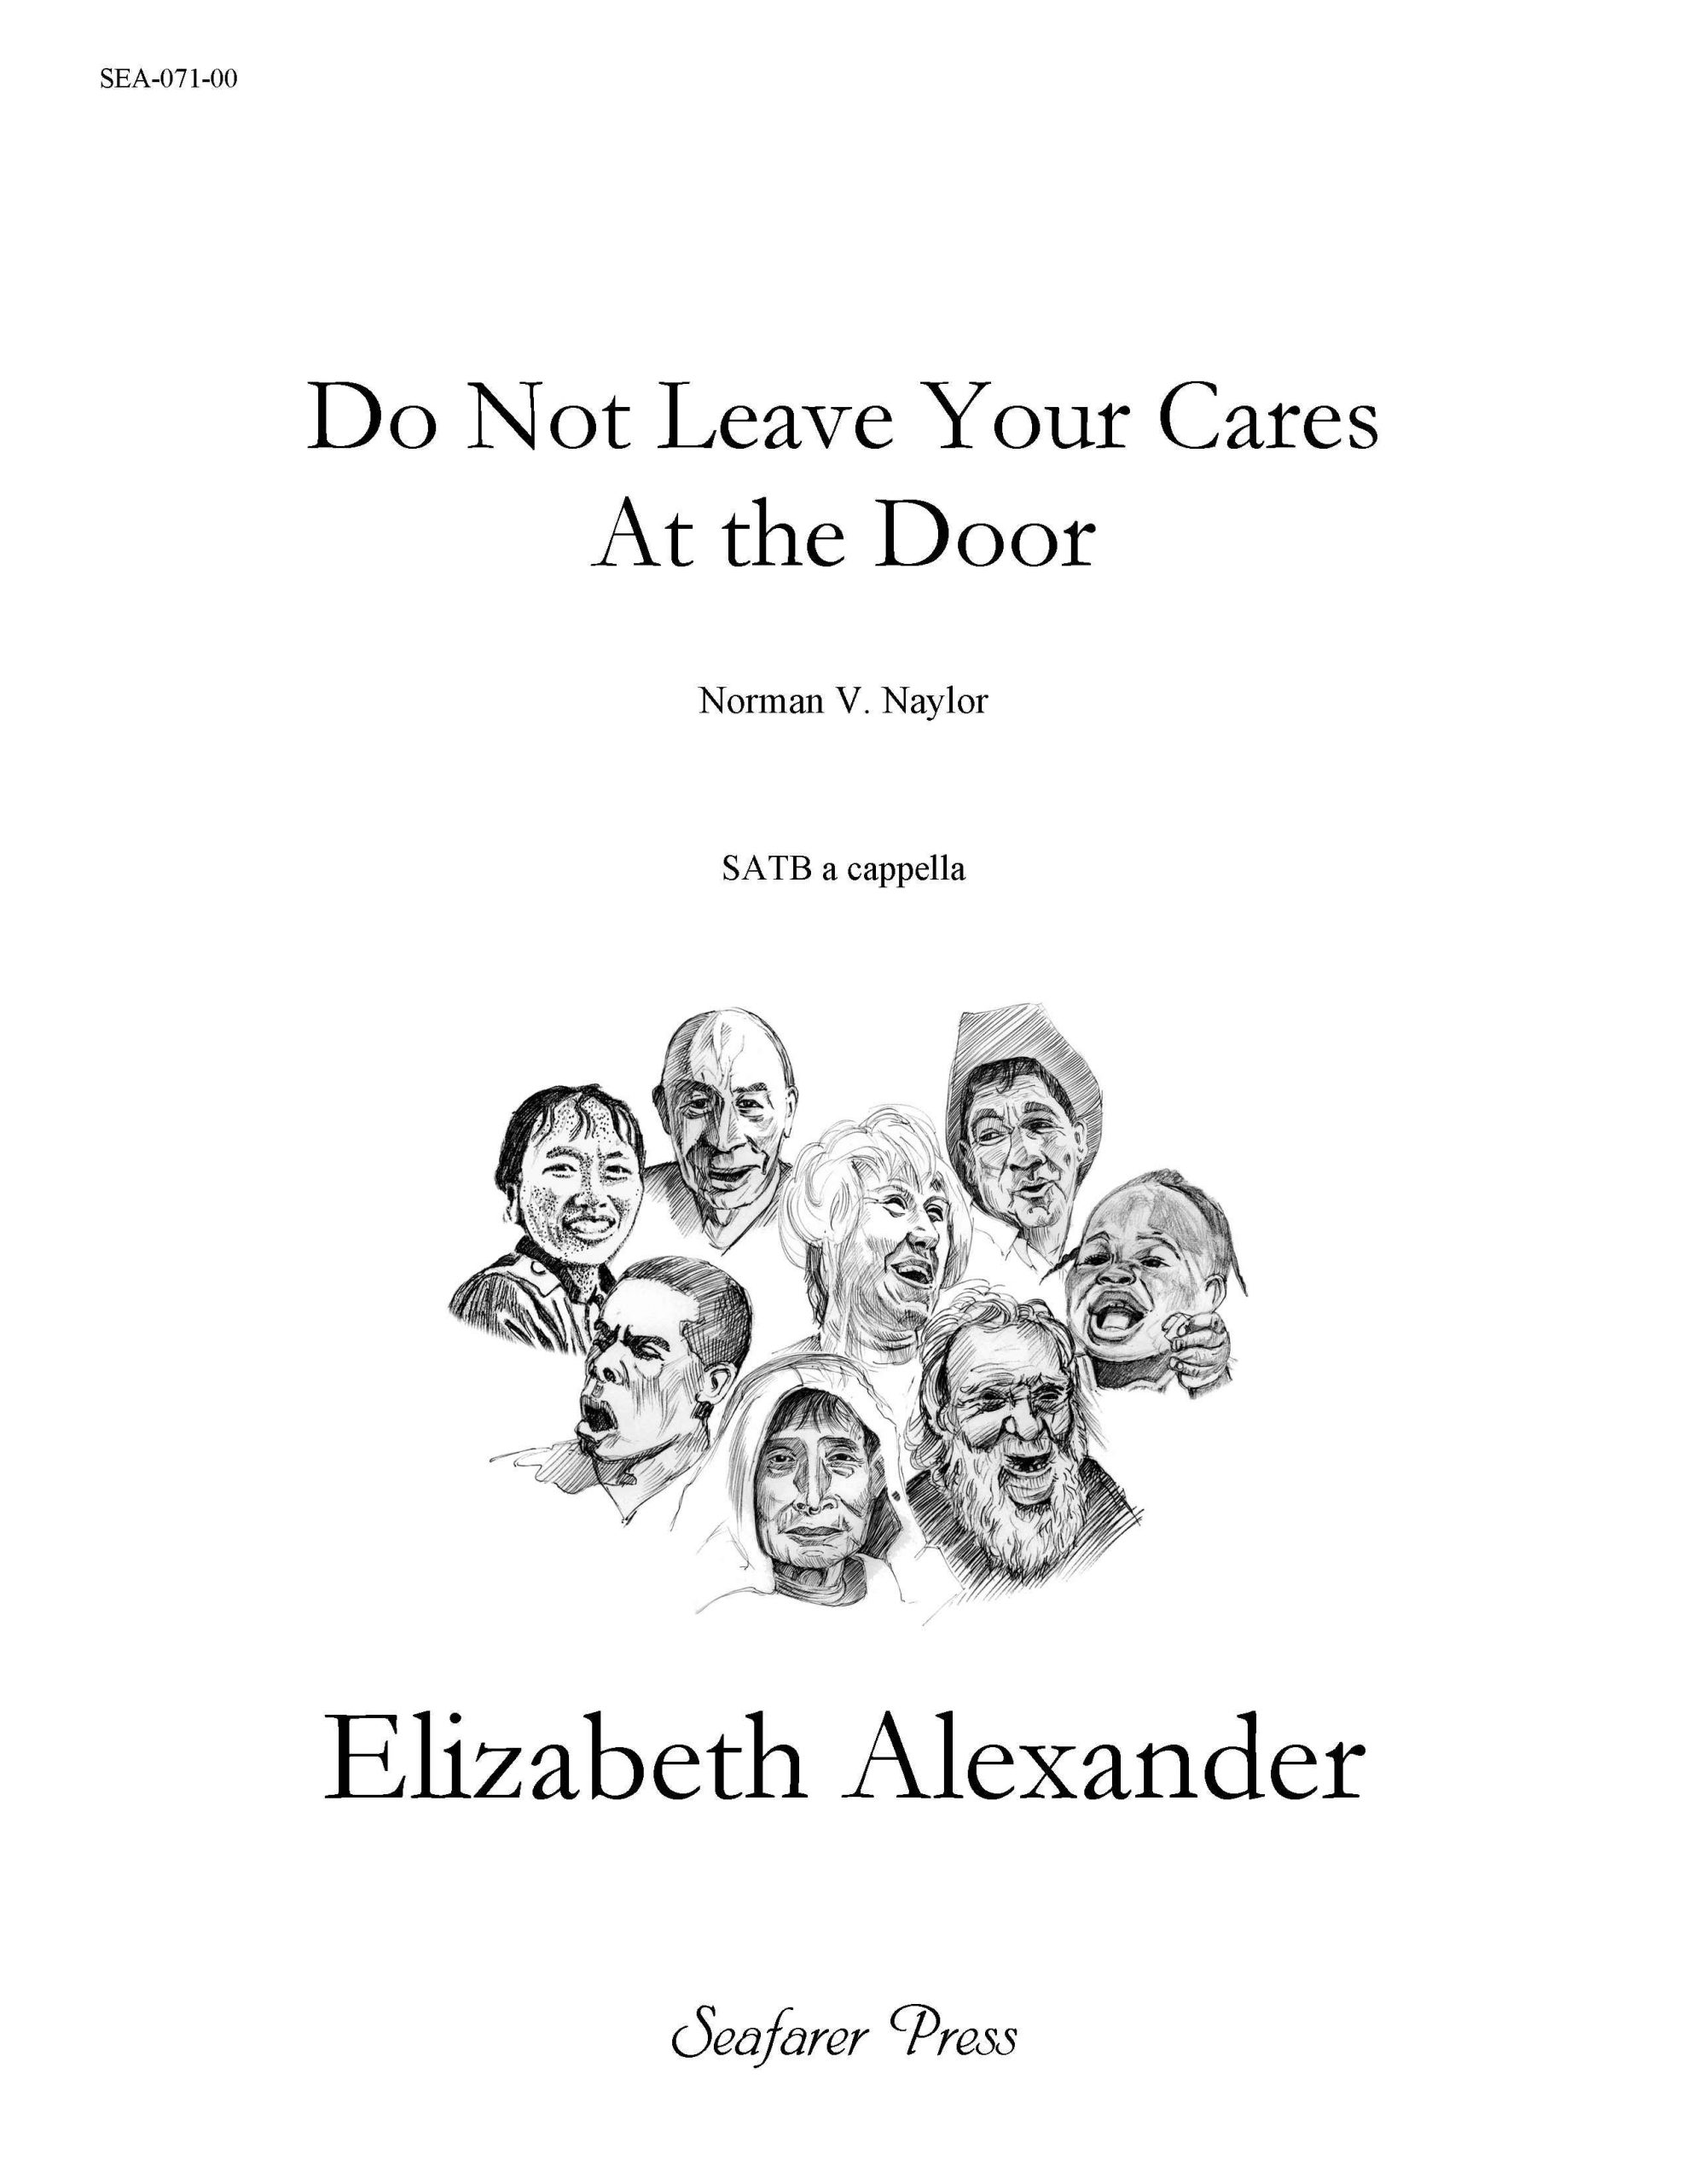 SEA-071-00 - Do Not Leave Your Cares At the Door (SATB)